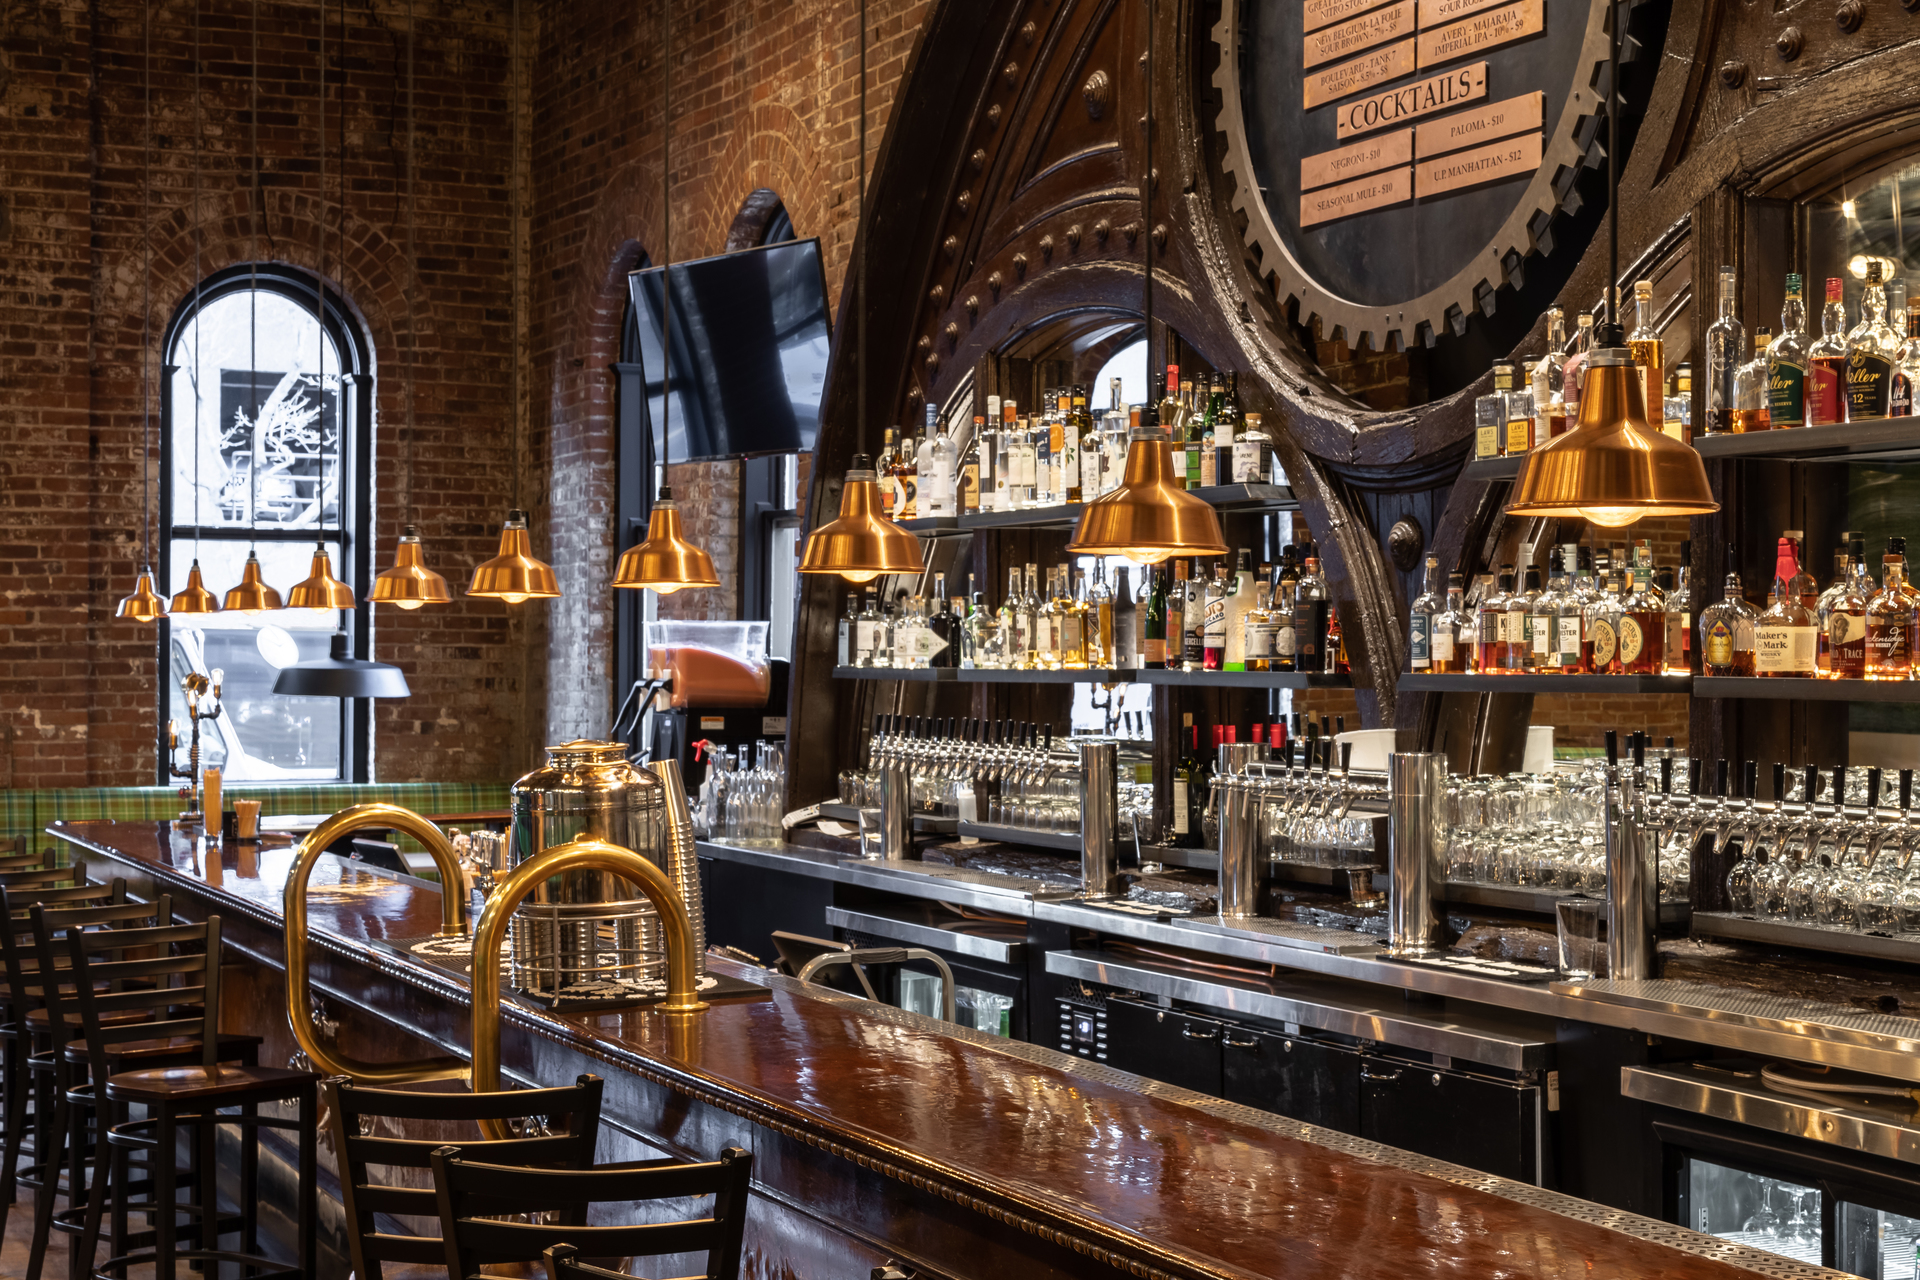 The vintage bar, situated on one side of the space, was once owned by Colorado native and boxing legend Jack Dempsey who fought in the early 1900s. The previous tenant had it installed in the early 1970s, and Chris was thrilled to incorporate this piece of history into the restaurant. The architect chose to highlight the bar with 11 Avalon Pendants crafted from Raw Copper.